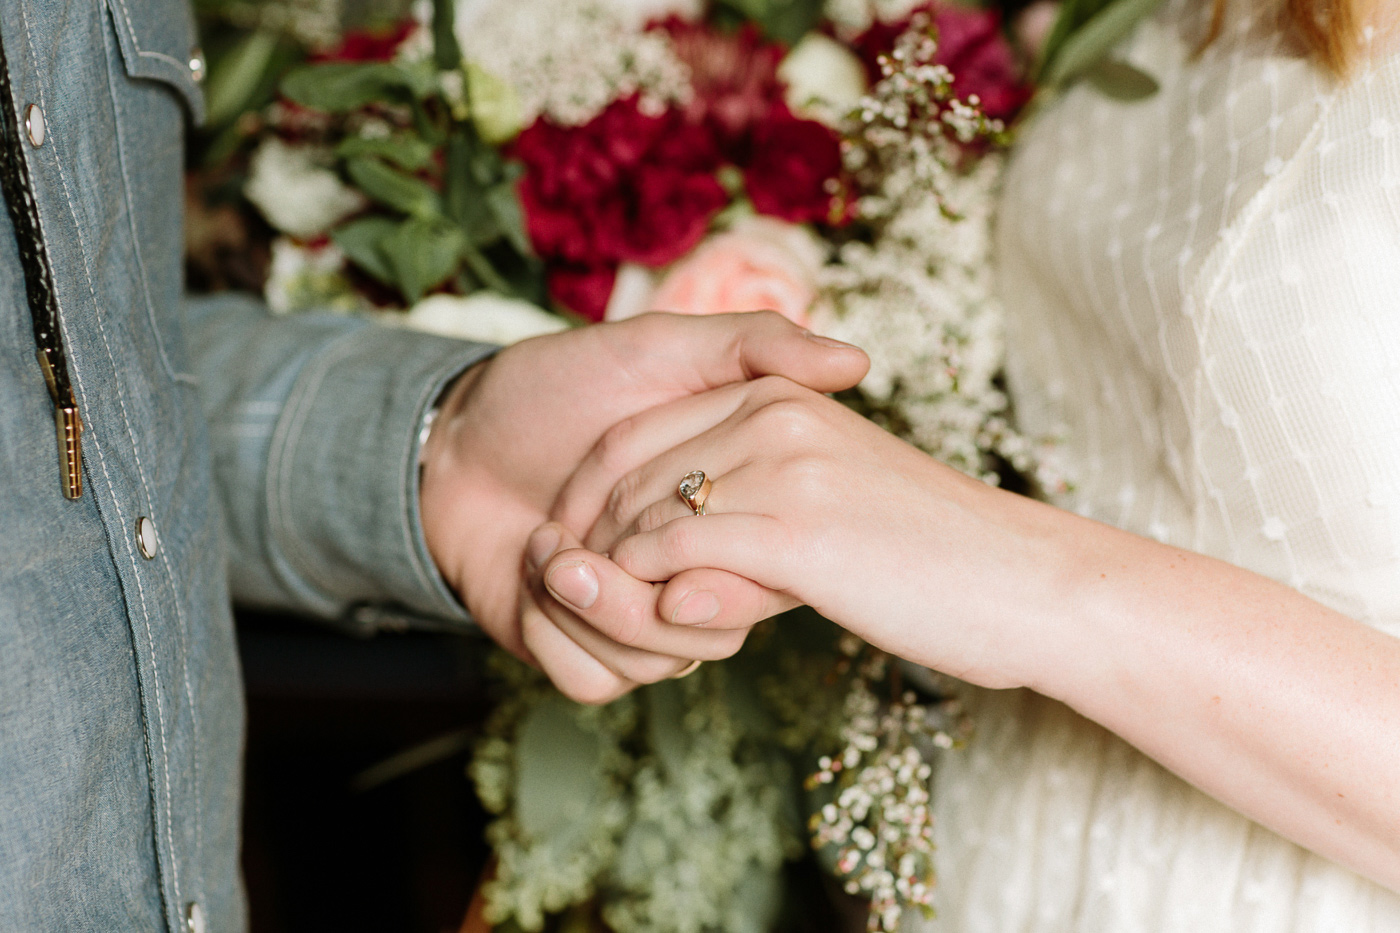 Bride and groom holding hands ring flowers